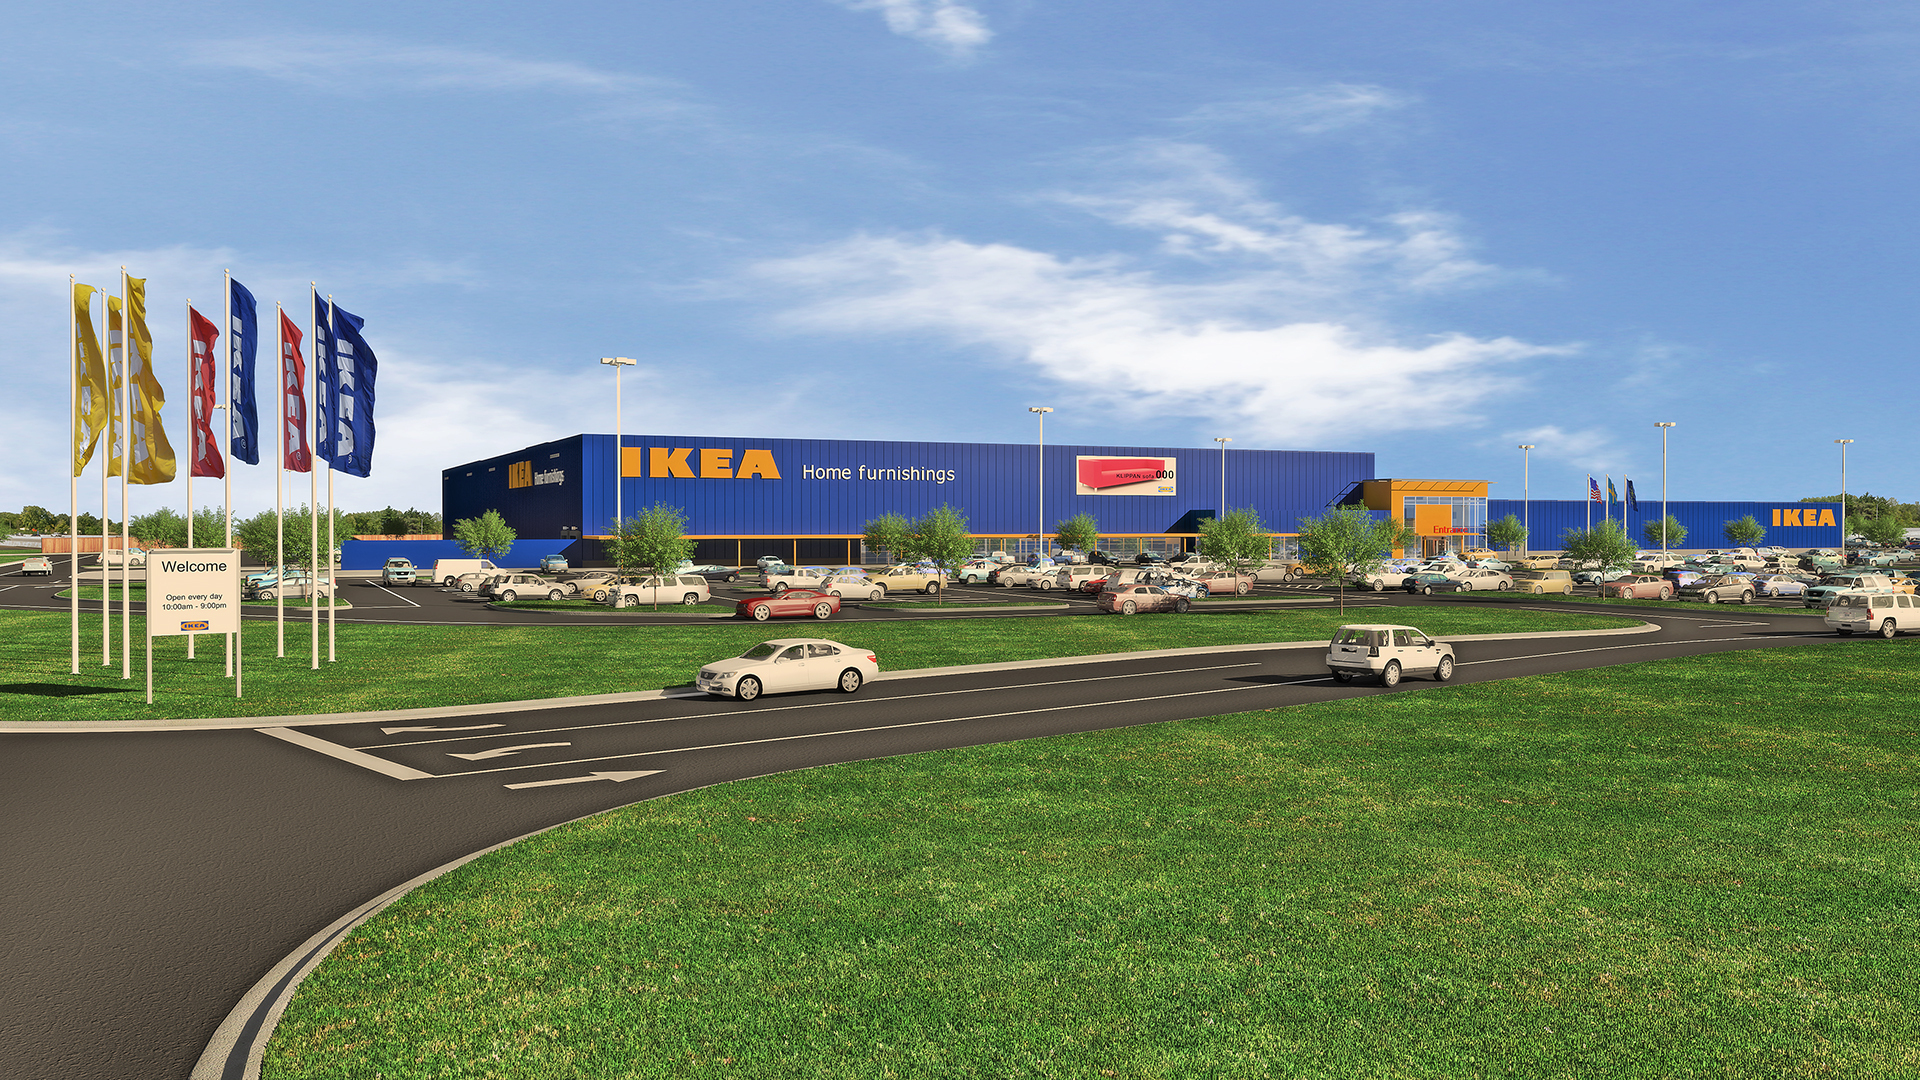 IKEA Submits Plans For Opening An Indianapolis Area Store Fall 2017 In  Fishers, Indiana As Company Expands U.S. Presence | Business Wire